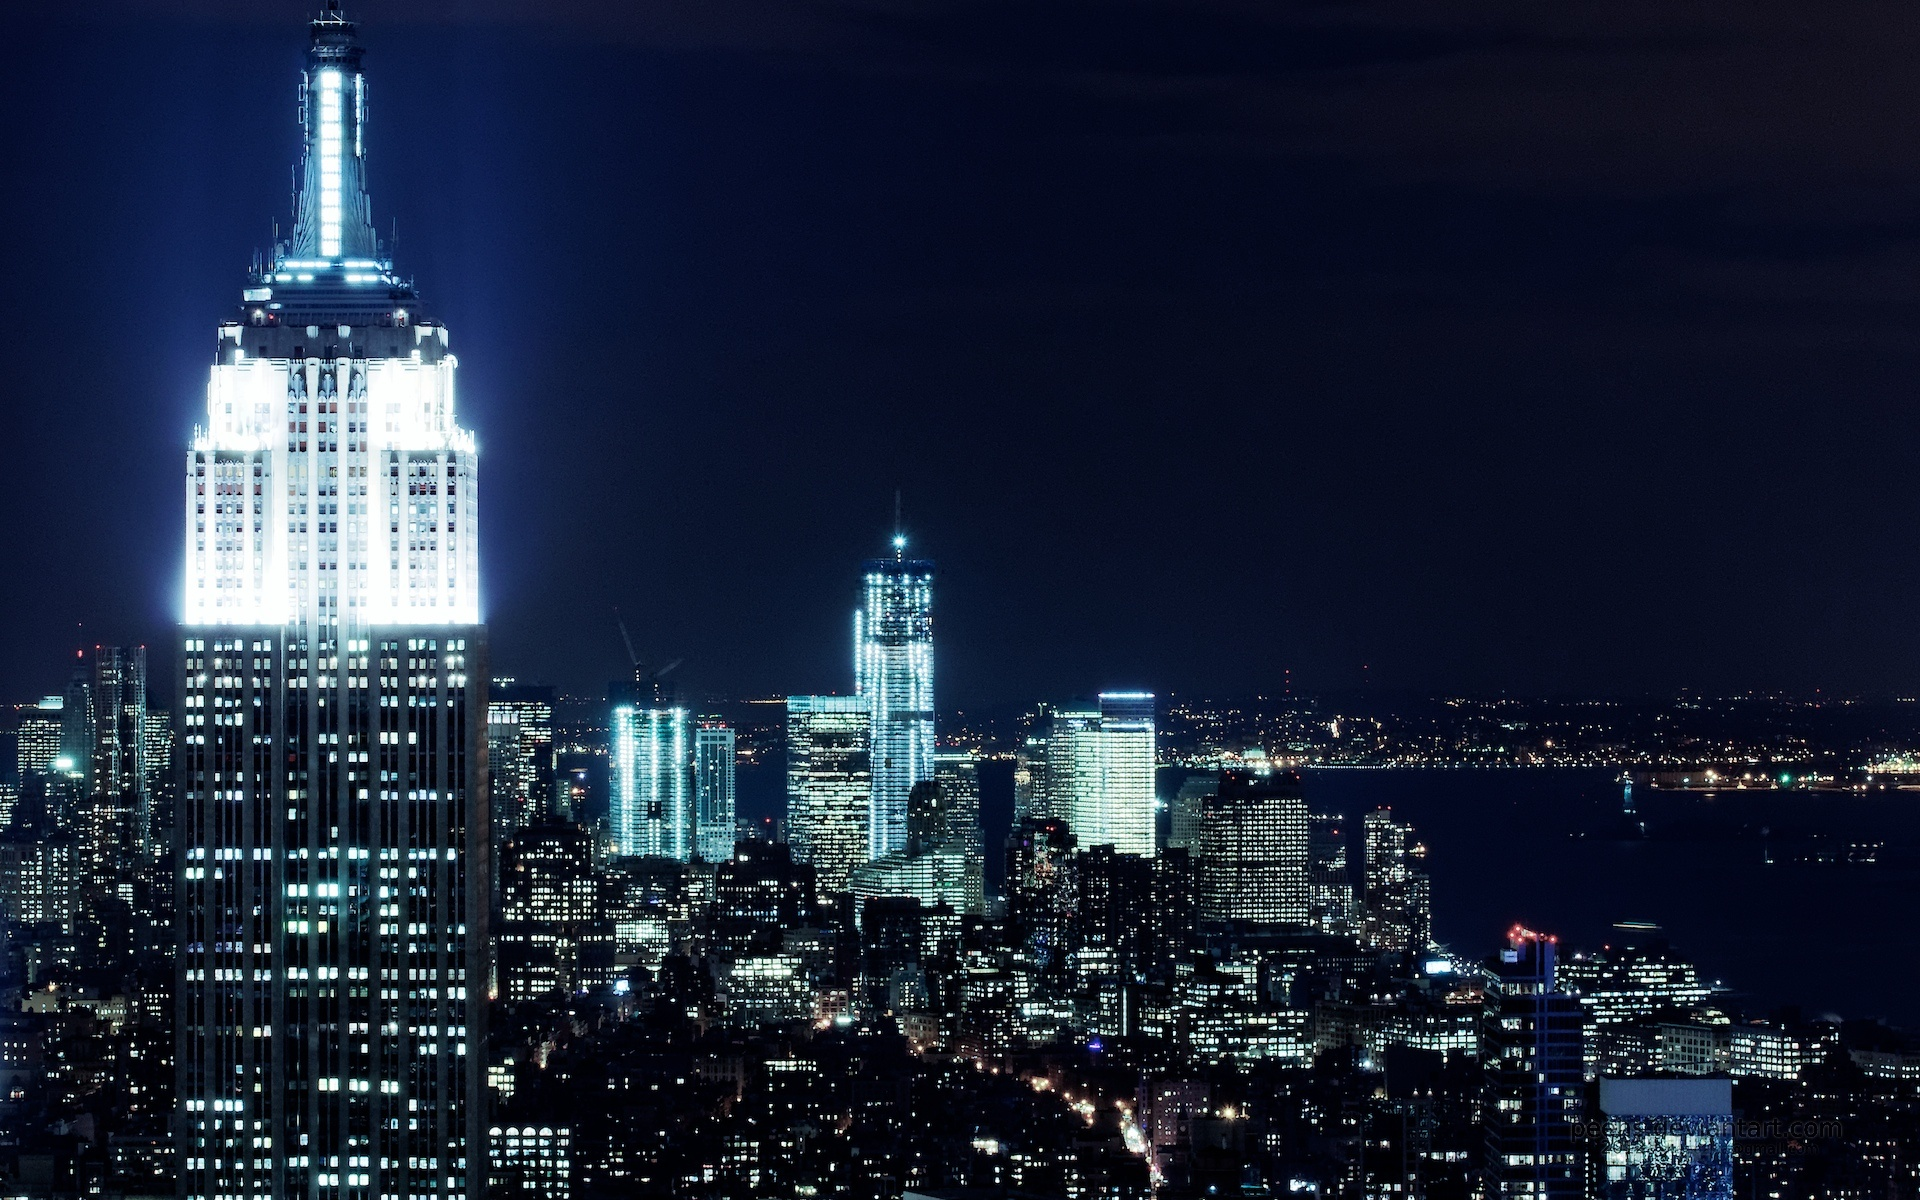 New York City Nights Wallpapers In Jpg Format For Free Download